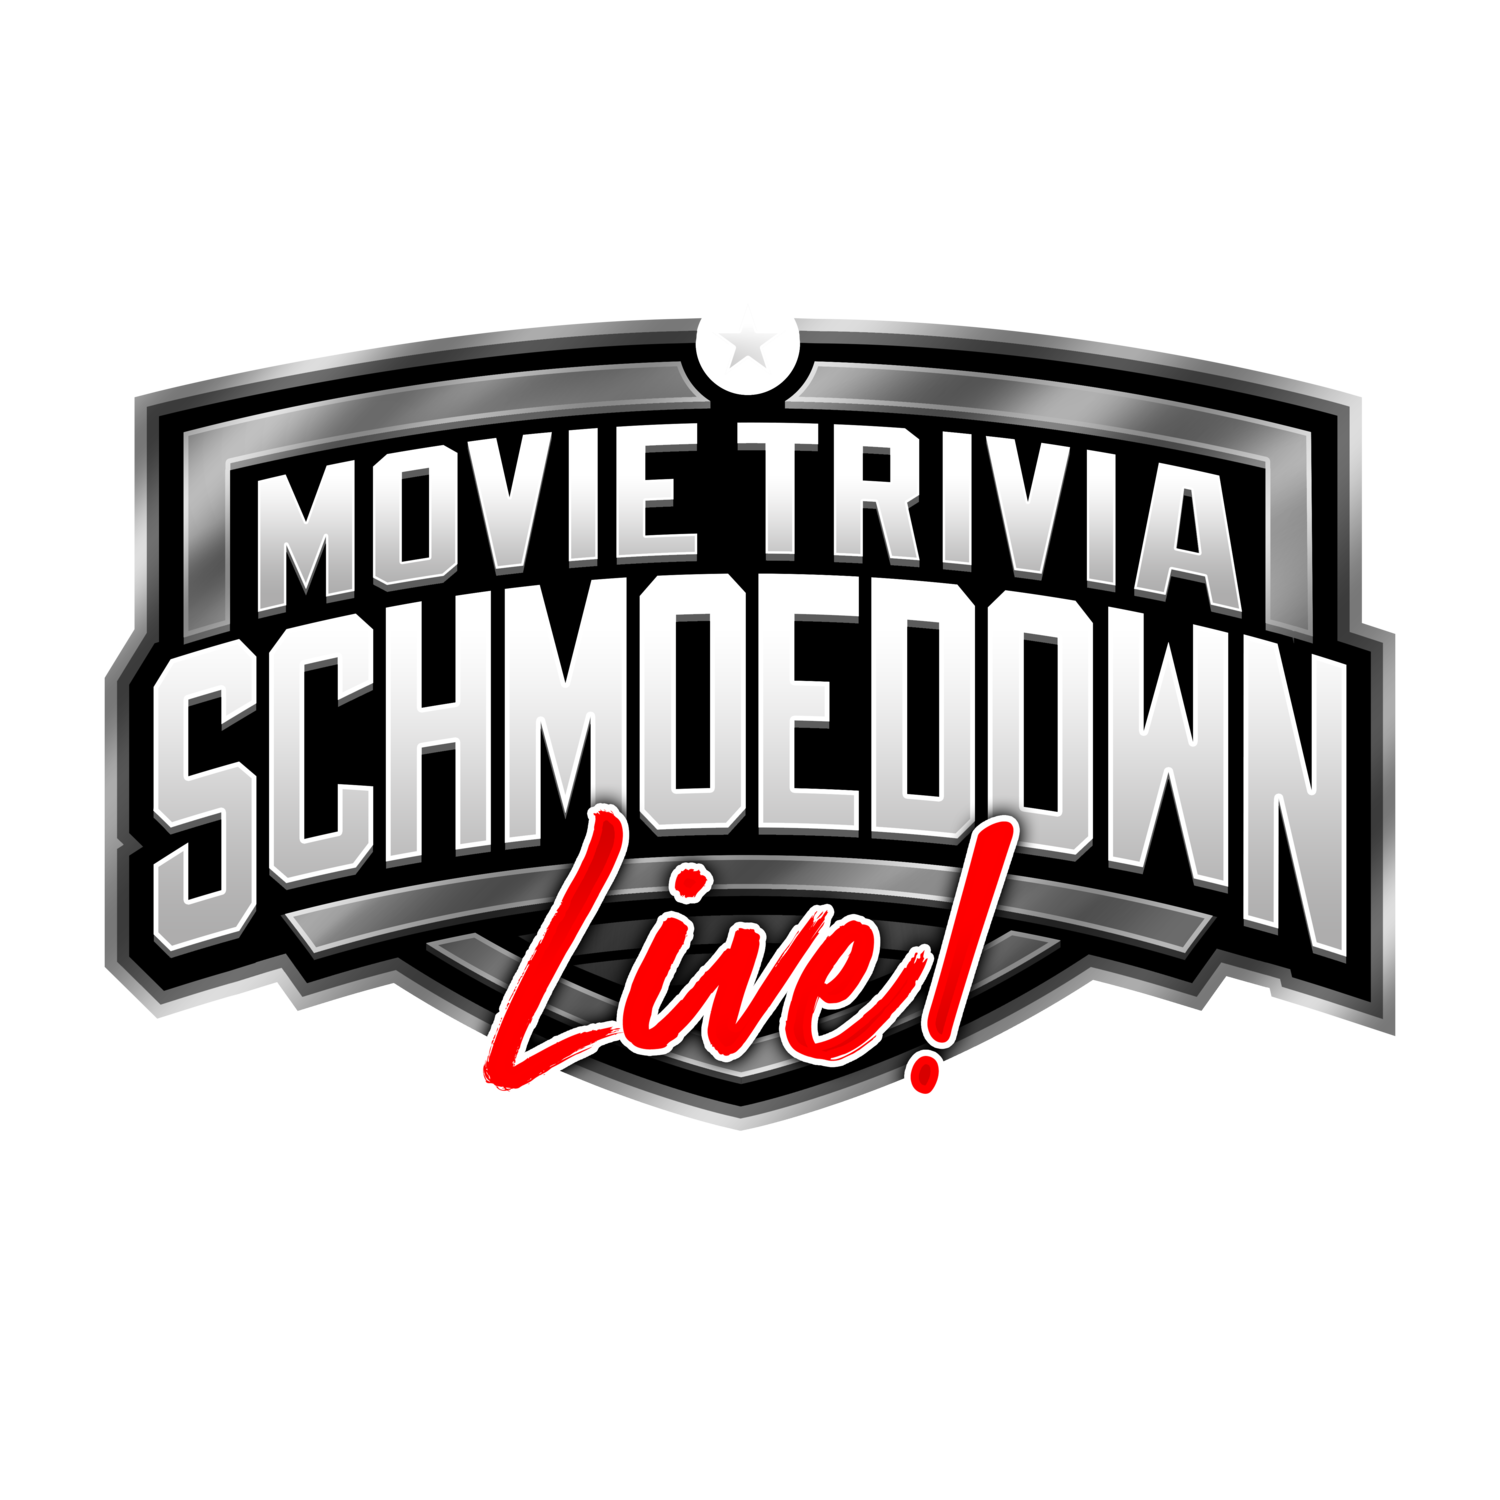 Movie Trivia Schmoedown Live!